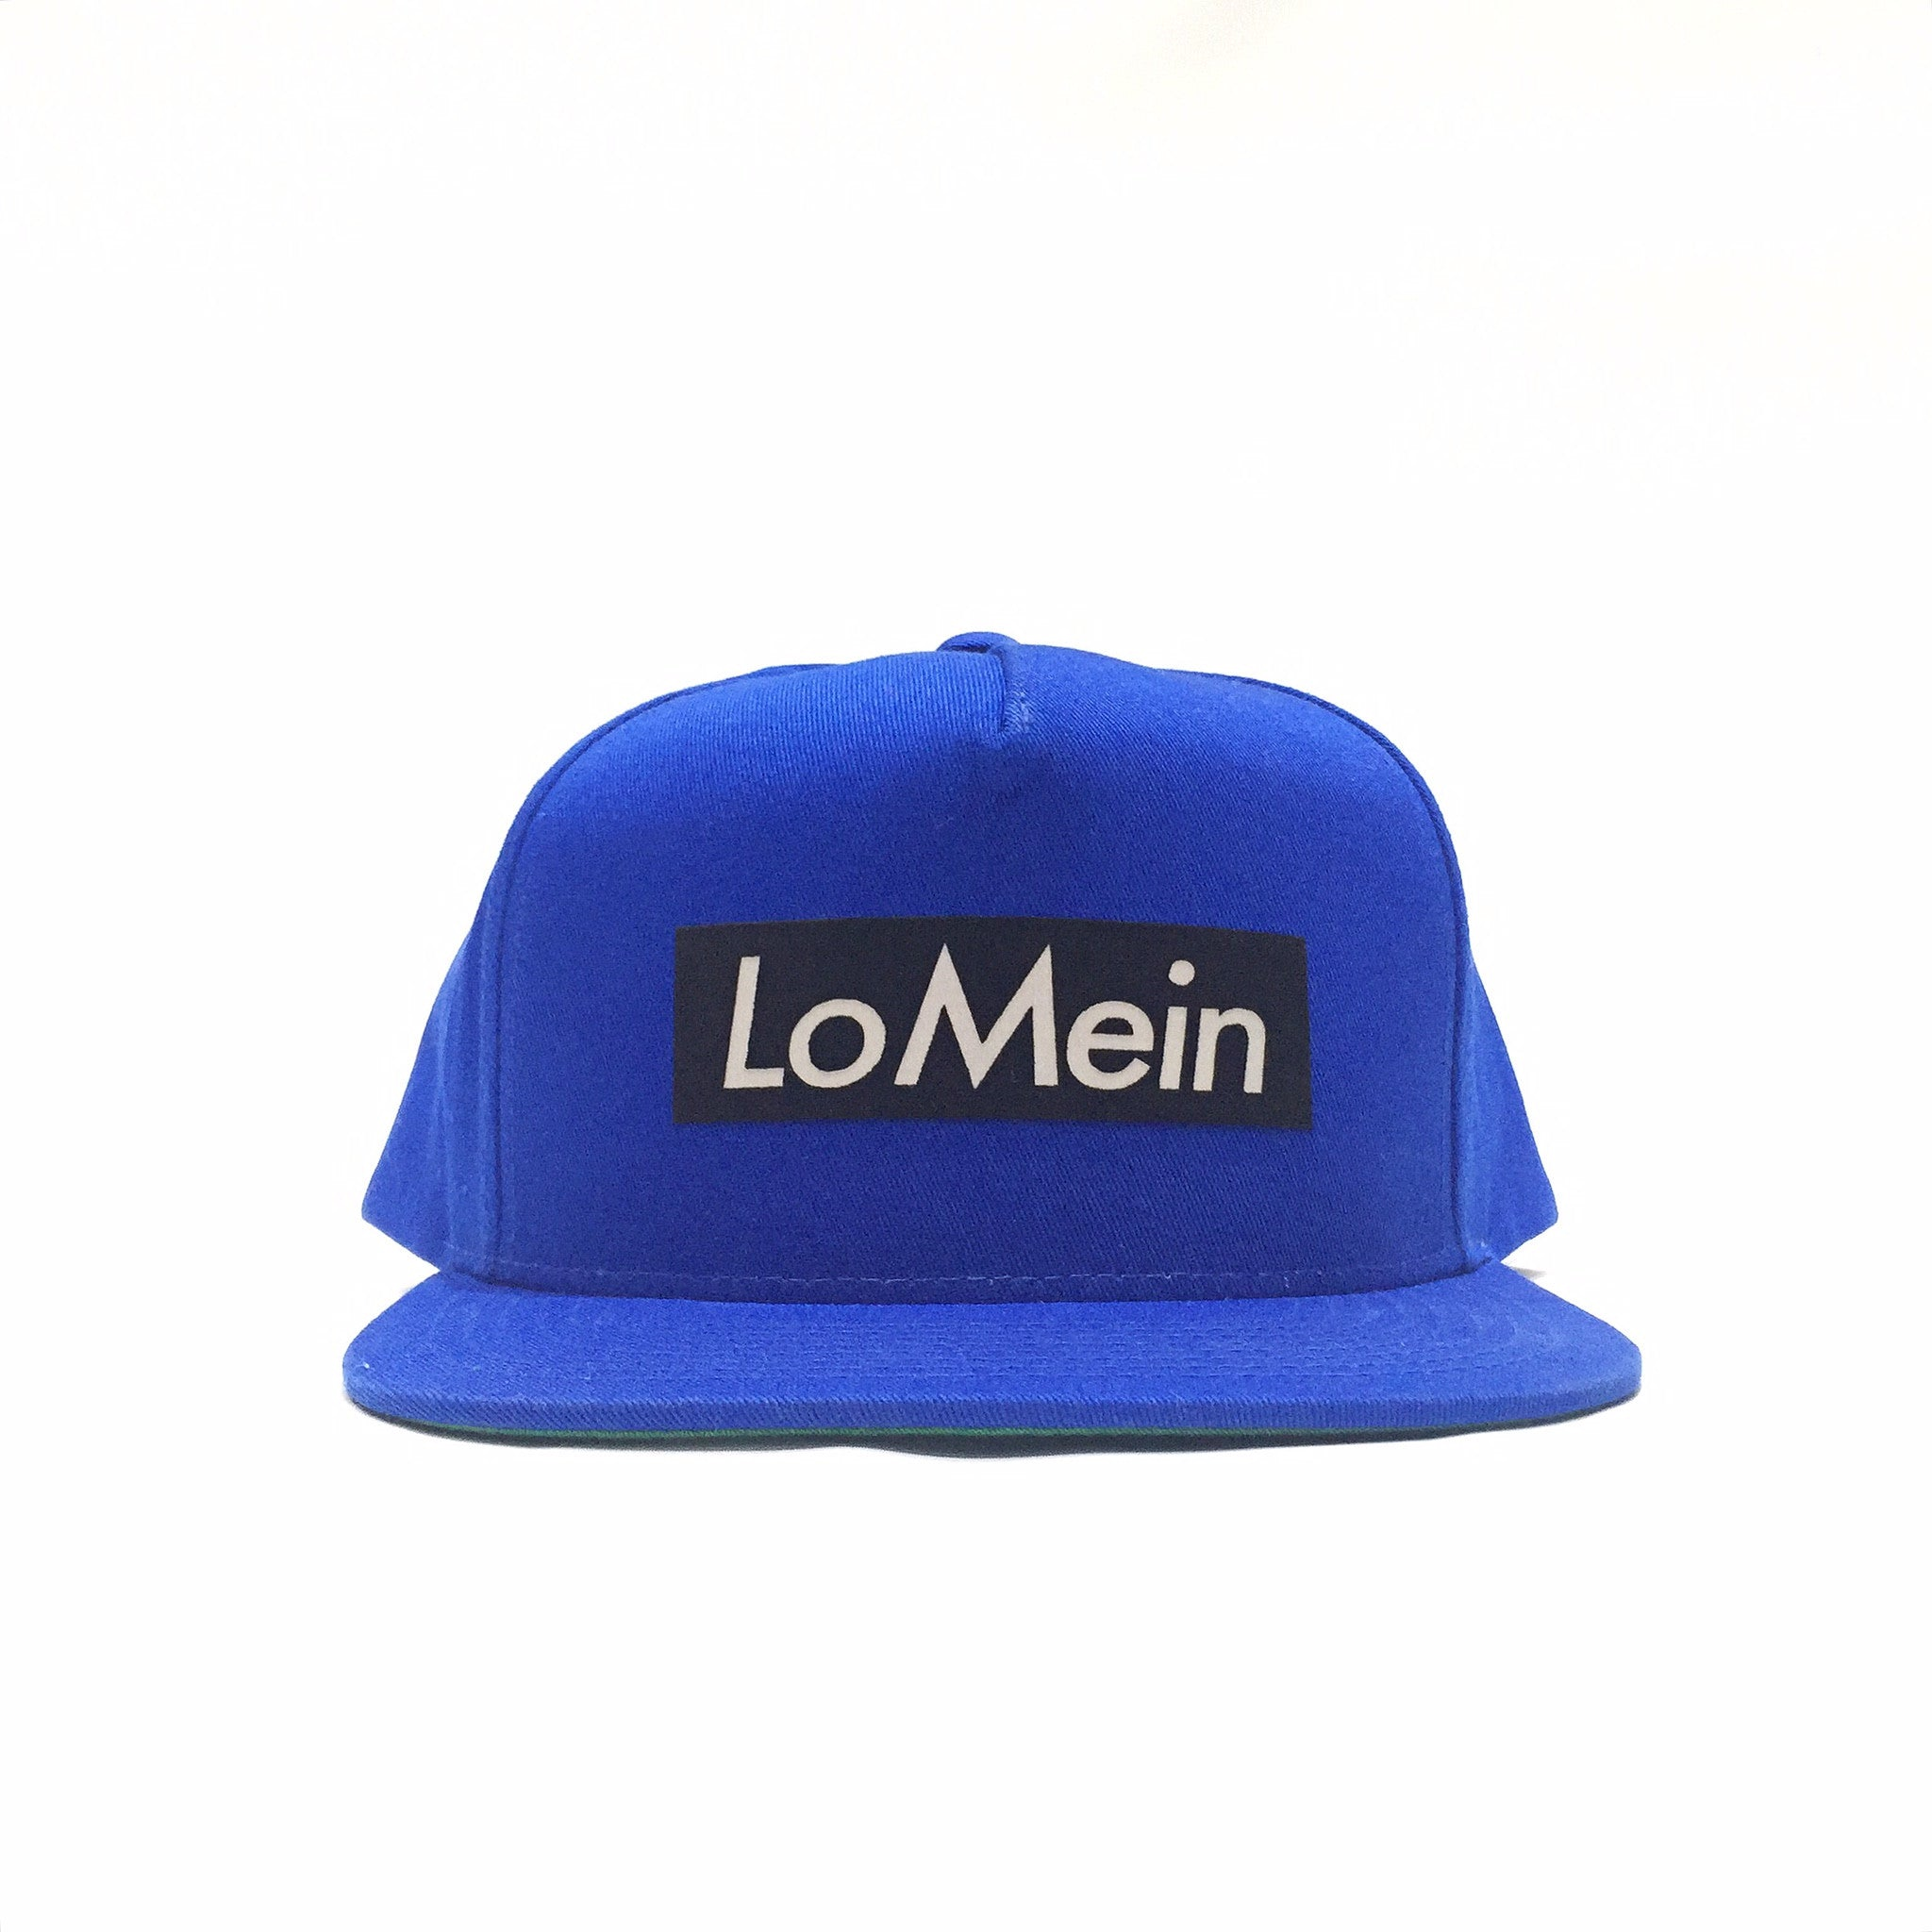 Lo Mein Collection 3M Reflective 5 Panel SnapBack Hat - Royal Blue